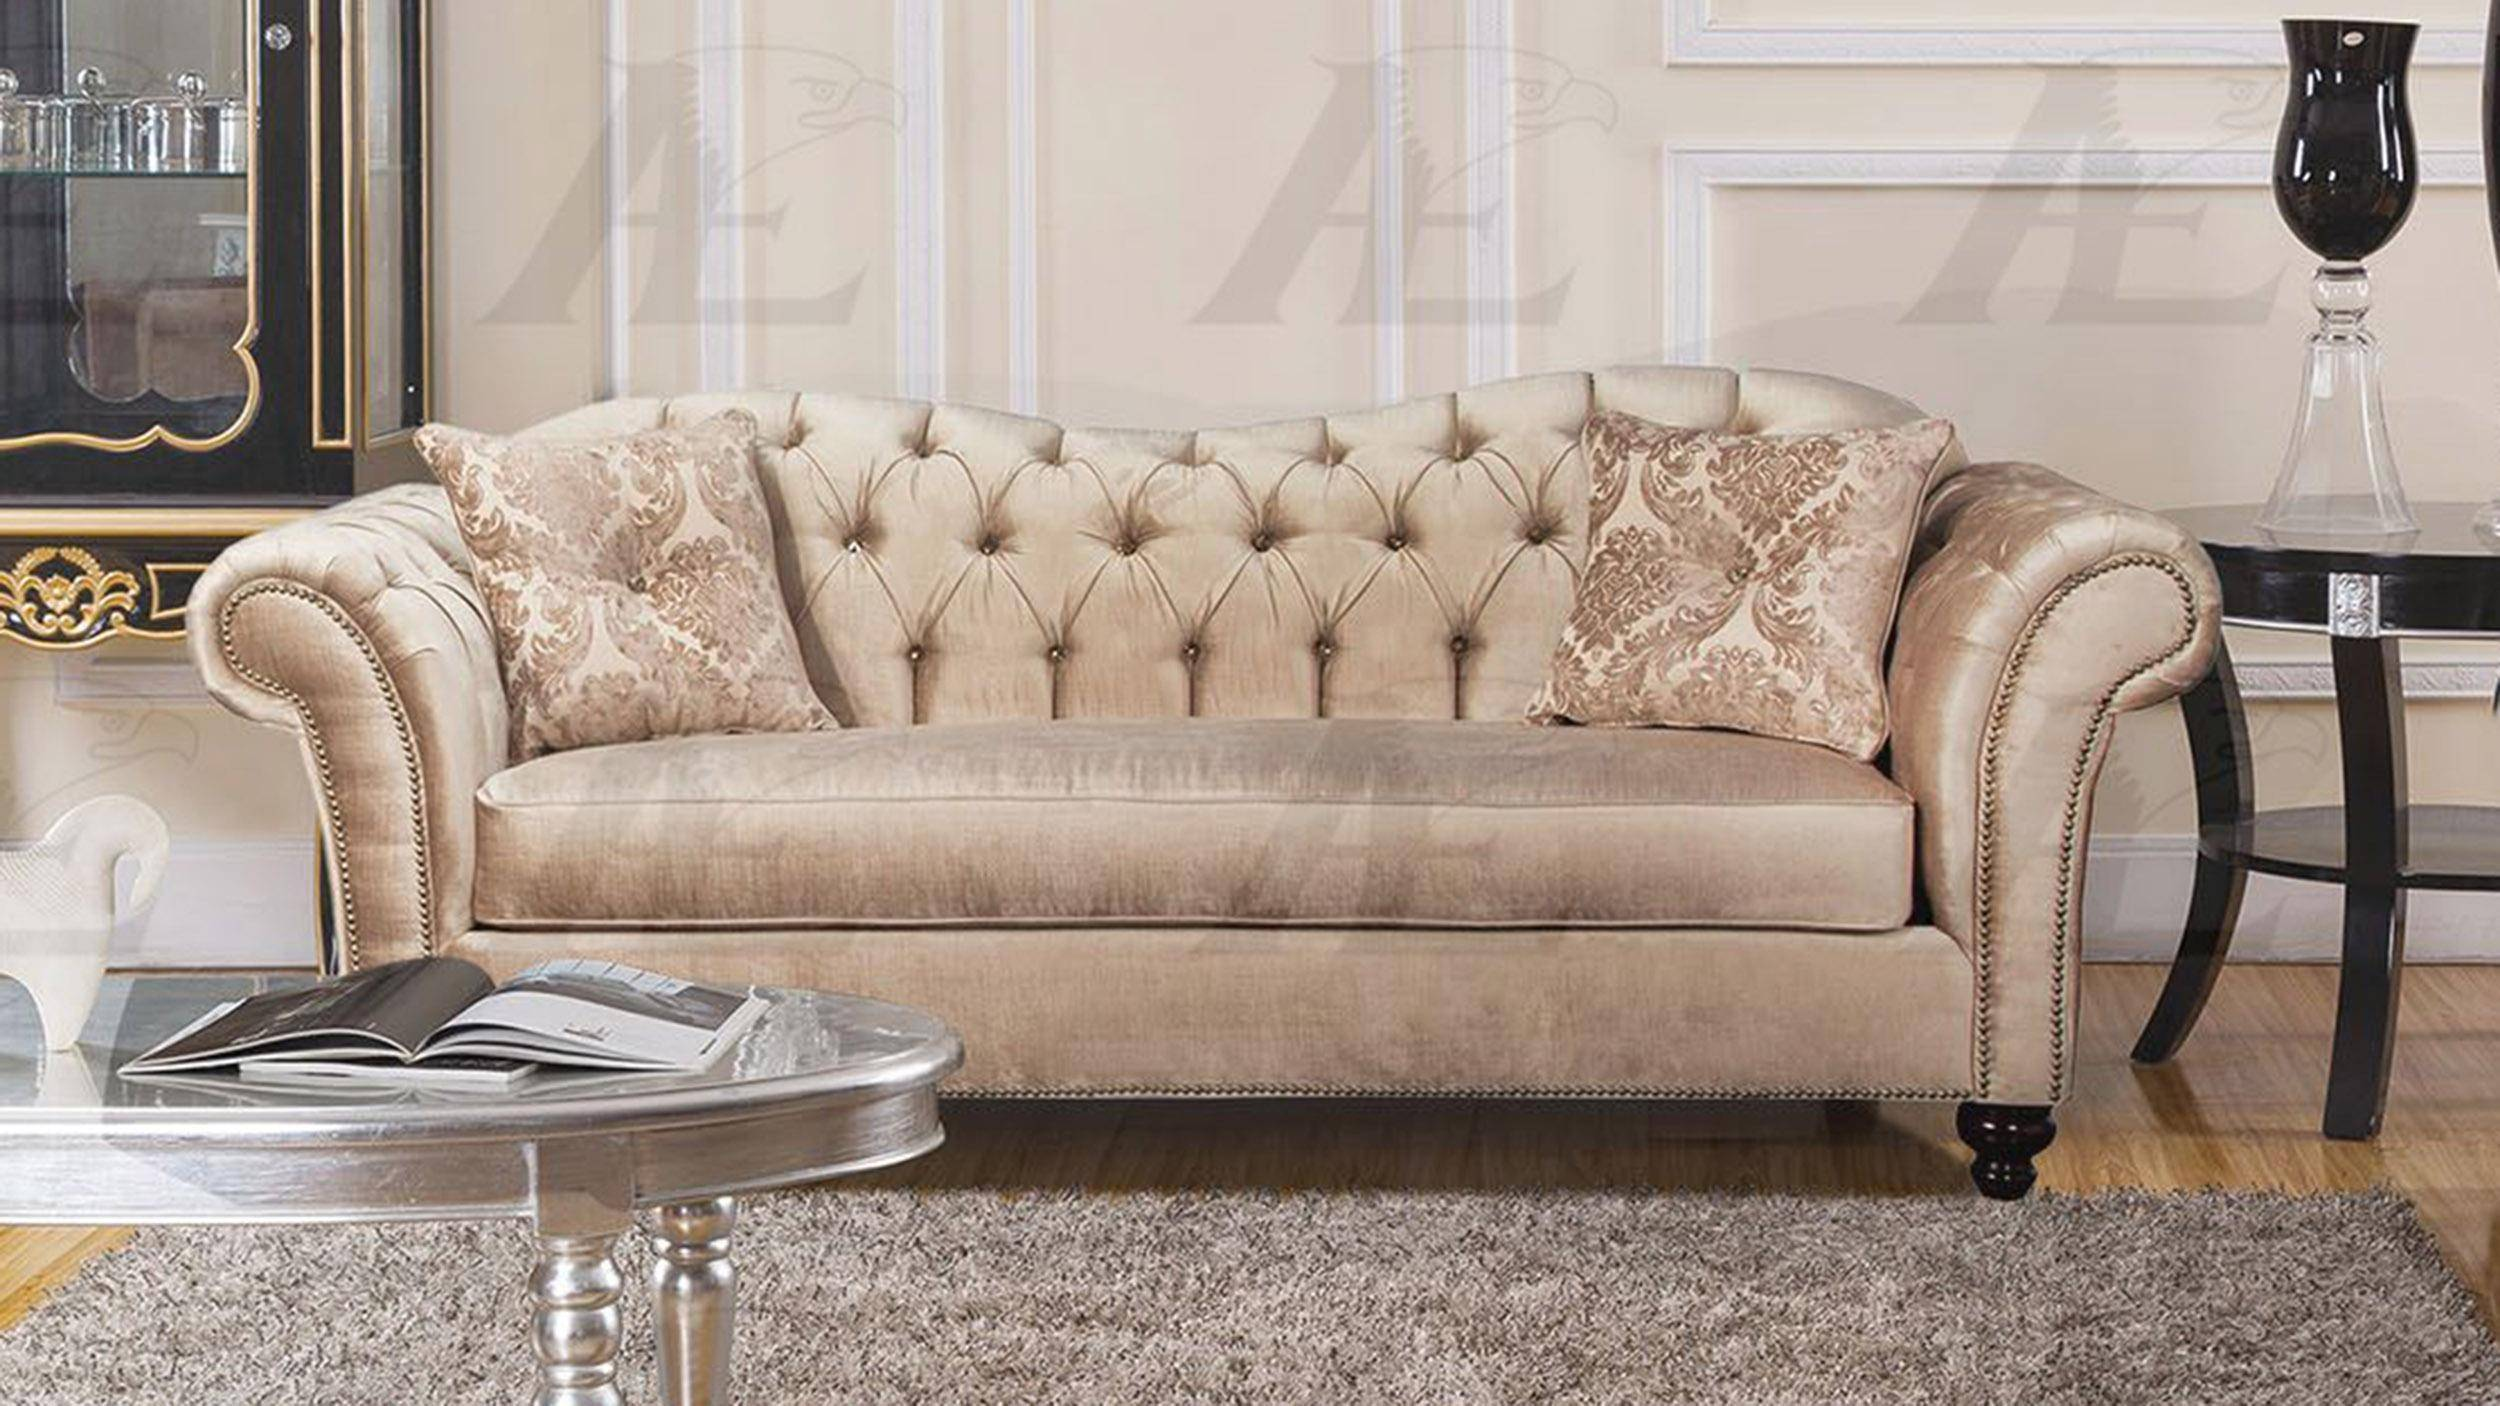 American Sofa Images American Eagle Ae2600 Ch Sofa In Champagne Fabric